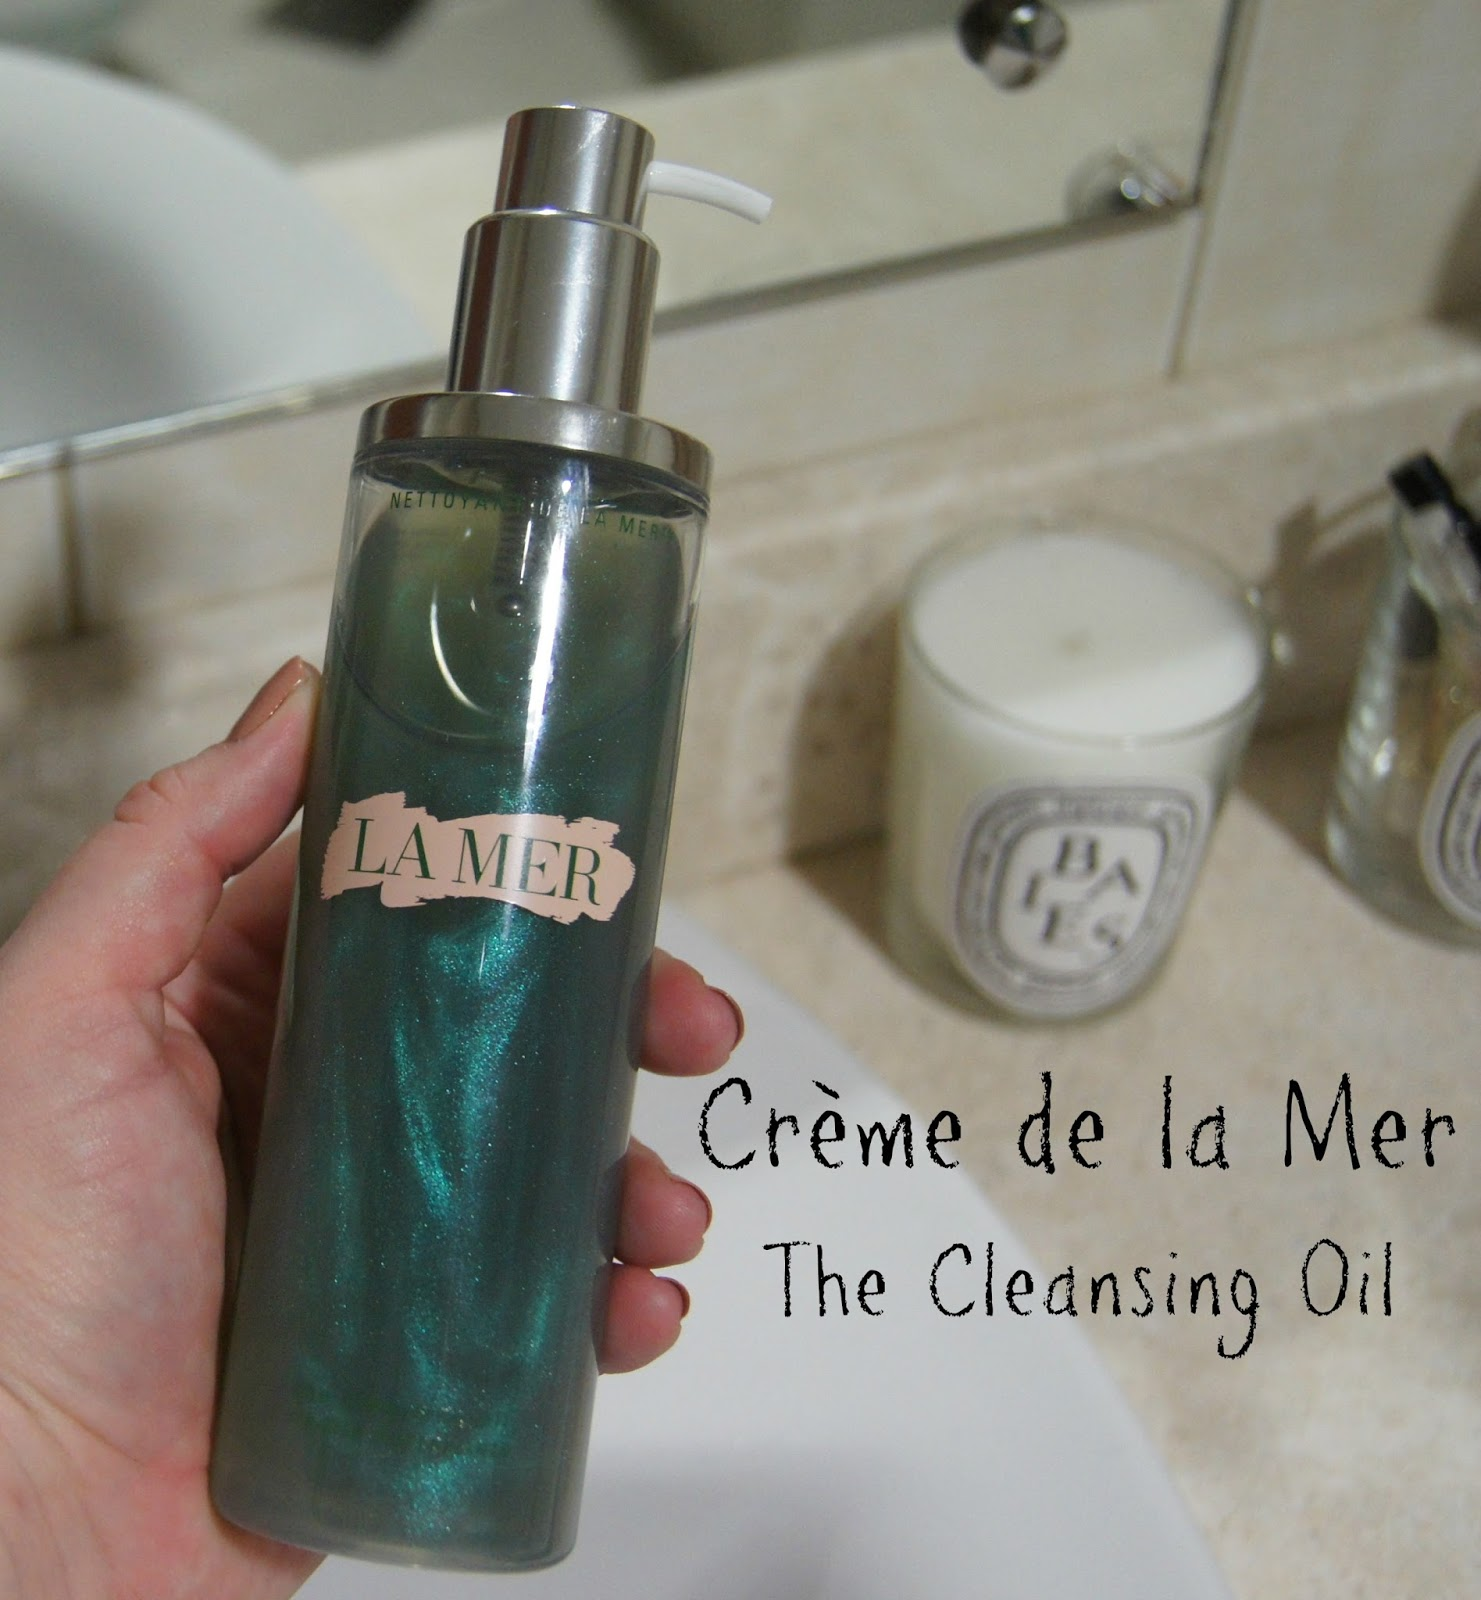 Creme de la mer the cleansing oil review